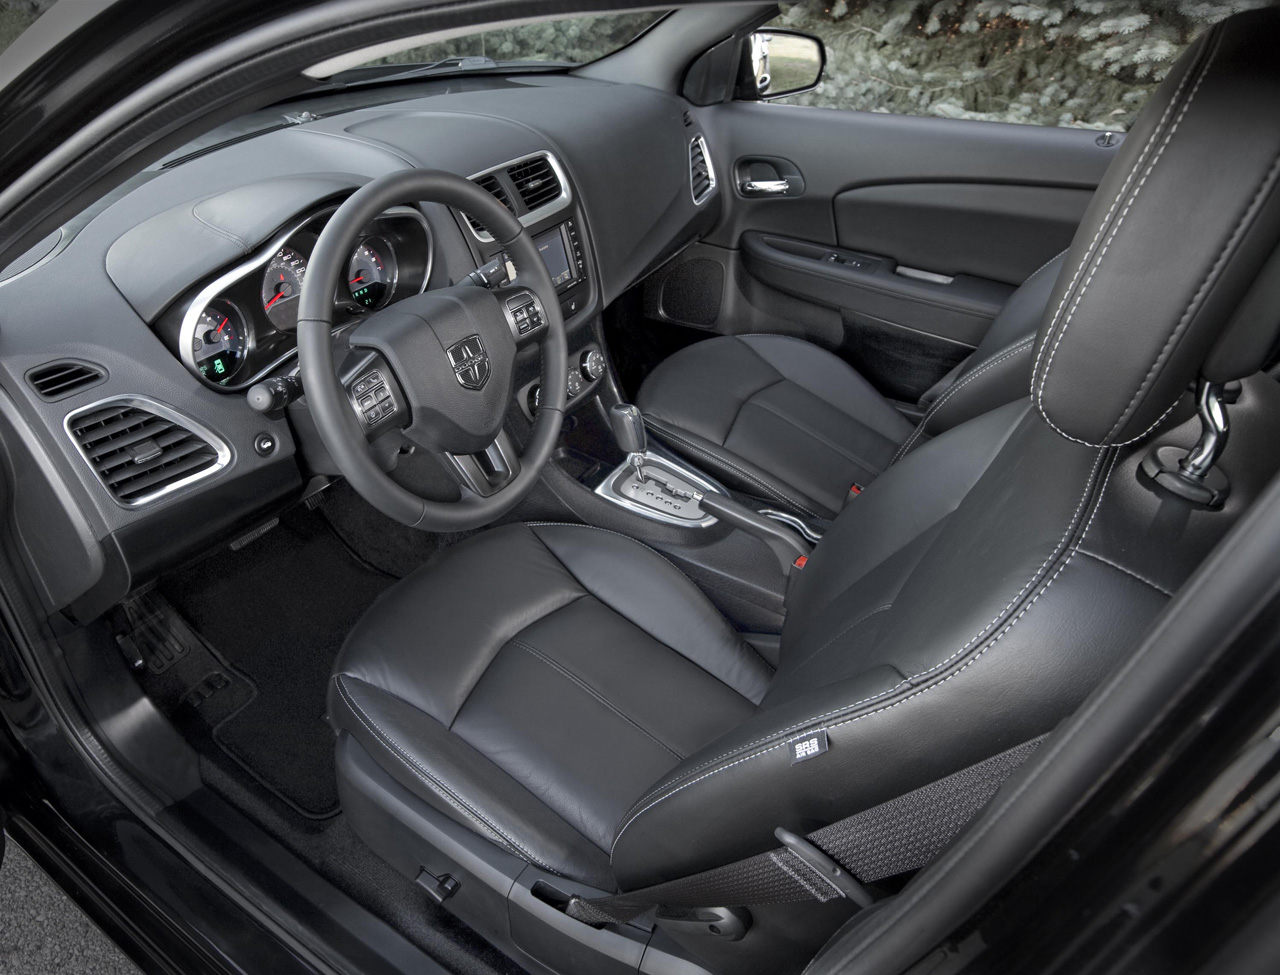 2011 Dodge Avenger Review   Top Speed. »